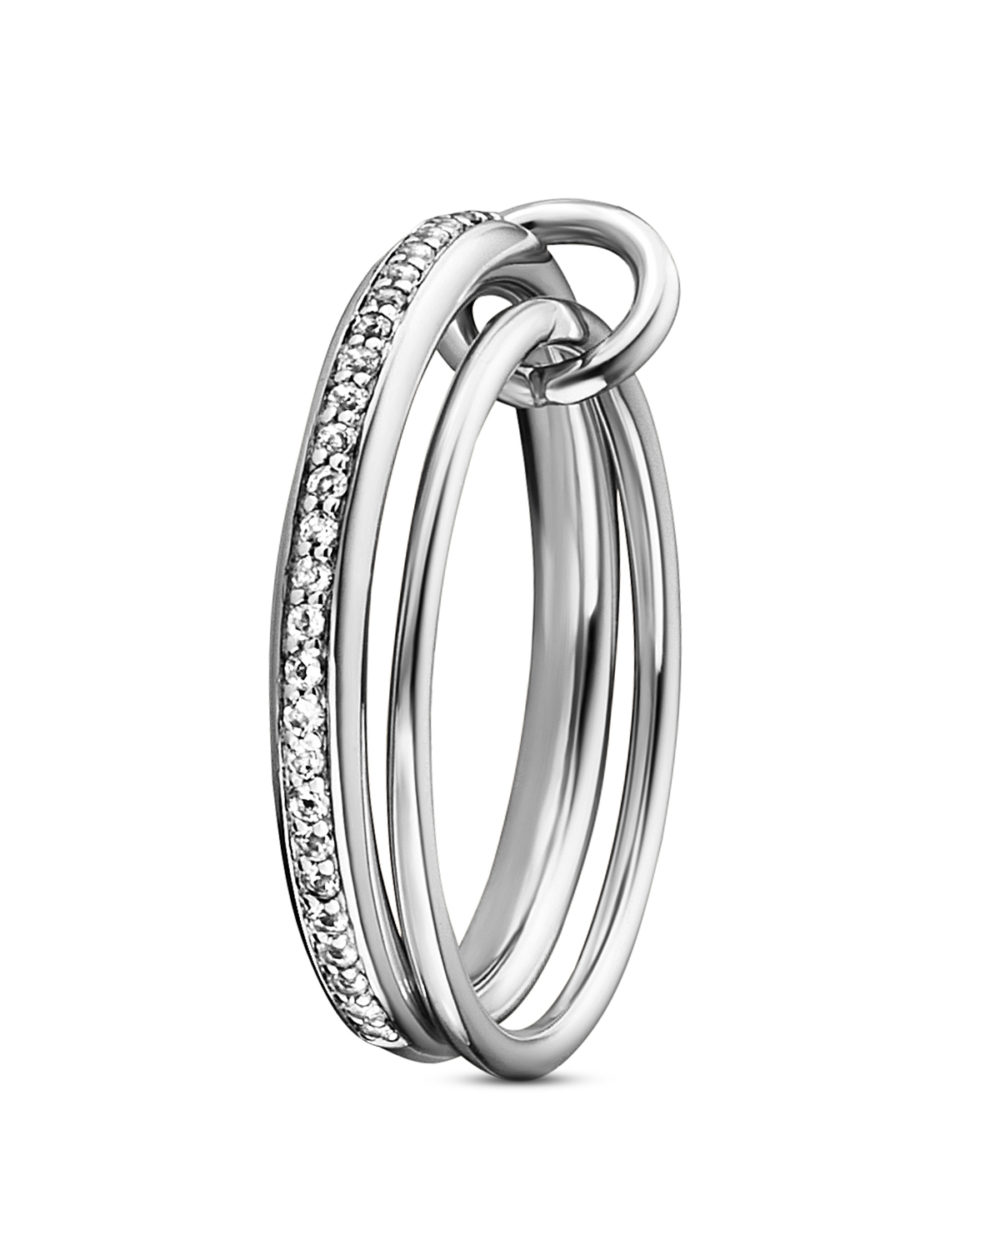 ca?, Ring Linked In 925 Sterling Silber mit Topasen 56